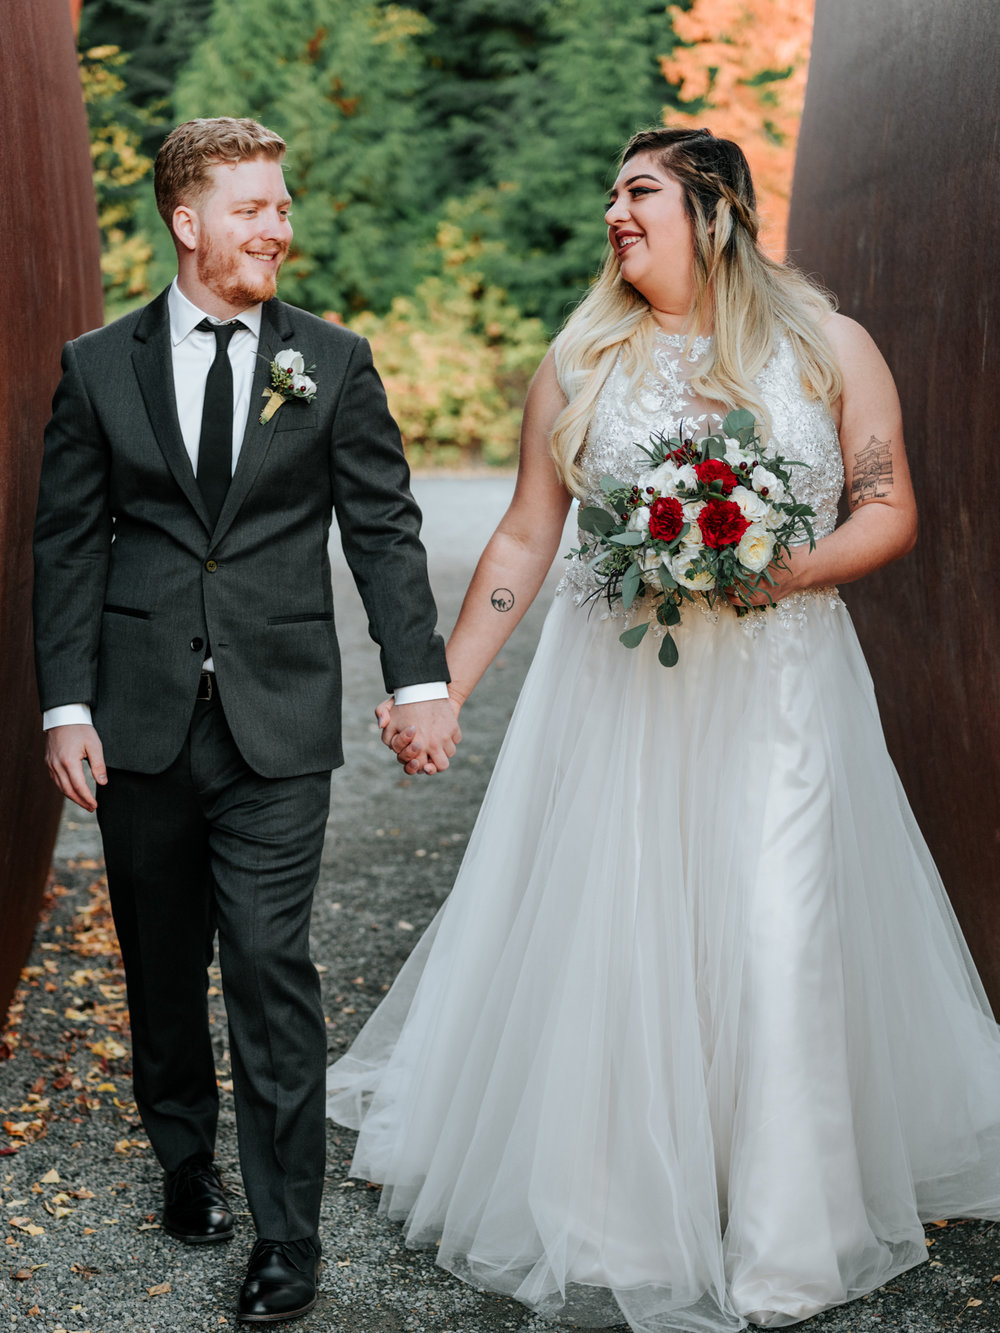 Stolen Glimpses Seattle Wedding Photographers 29.jpg